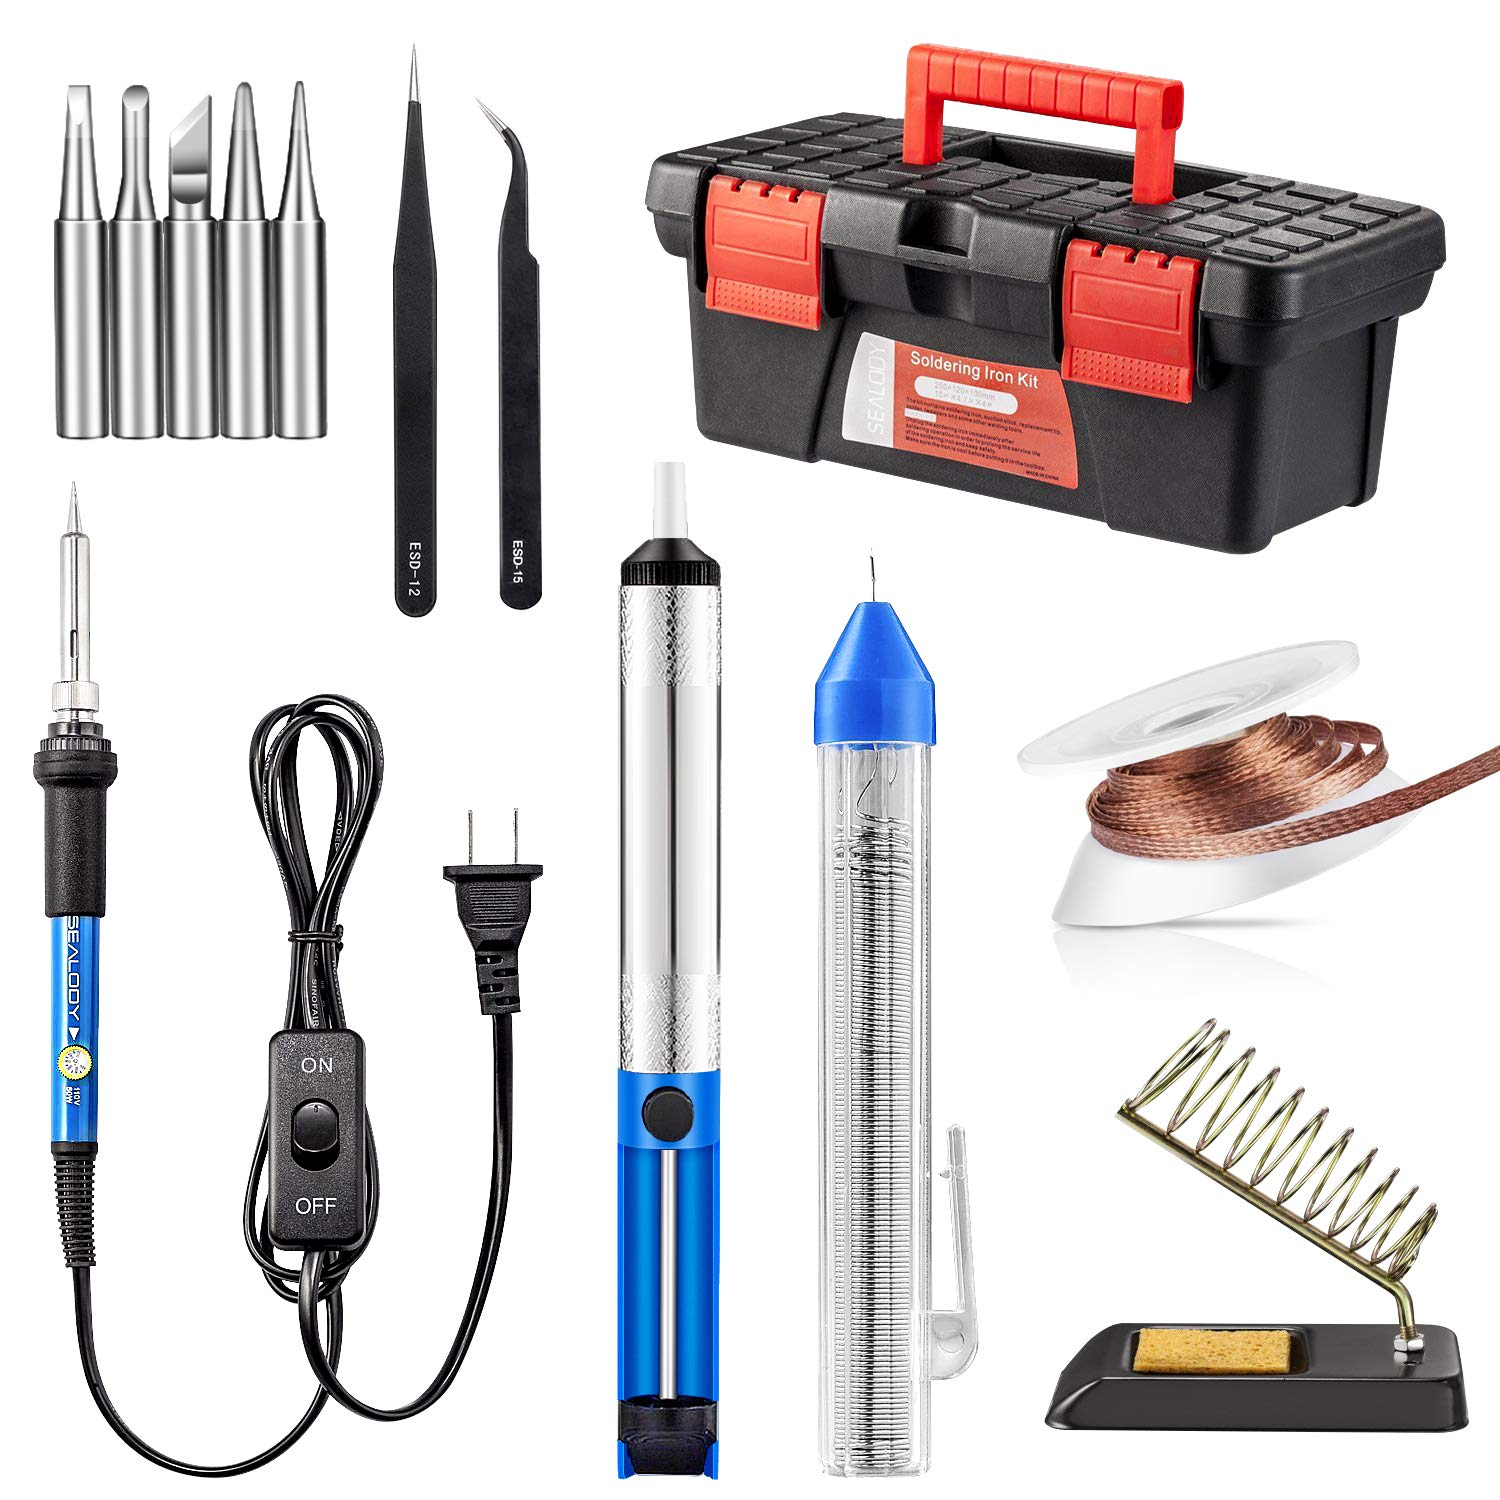 Soldering Iron Kit Including 60w Temperature Control Wire With On Off Switch